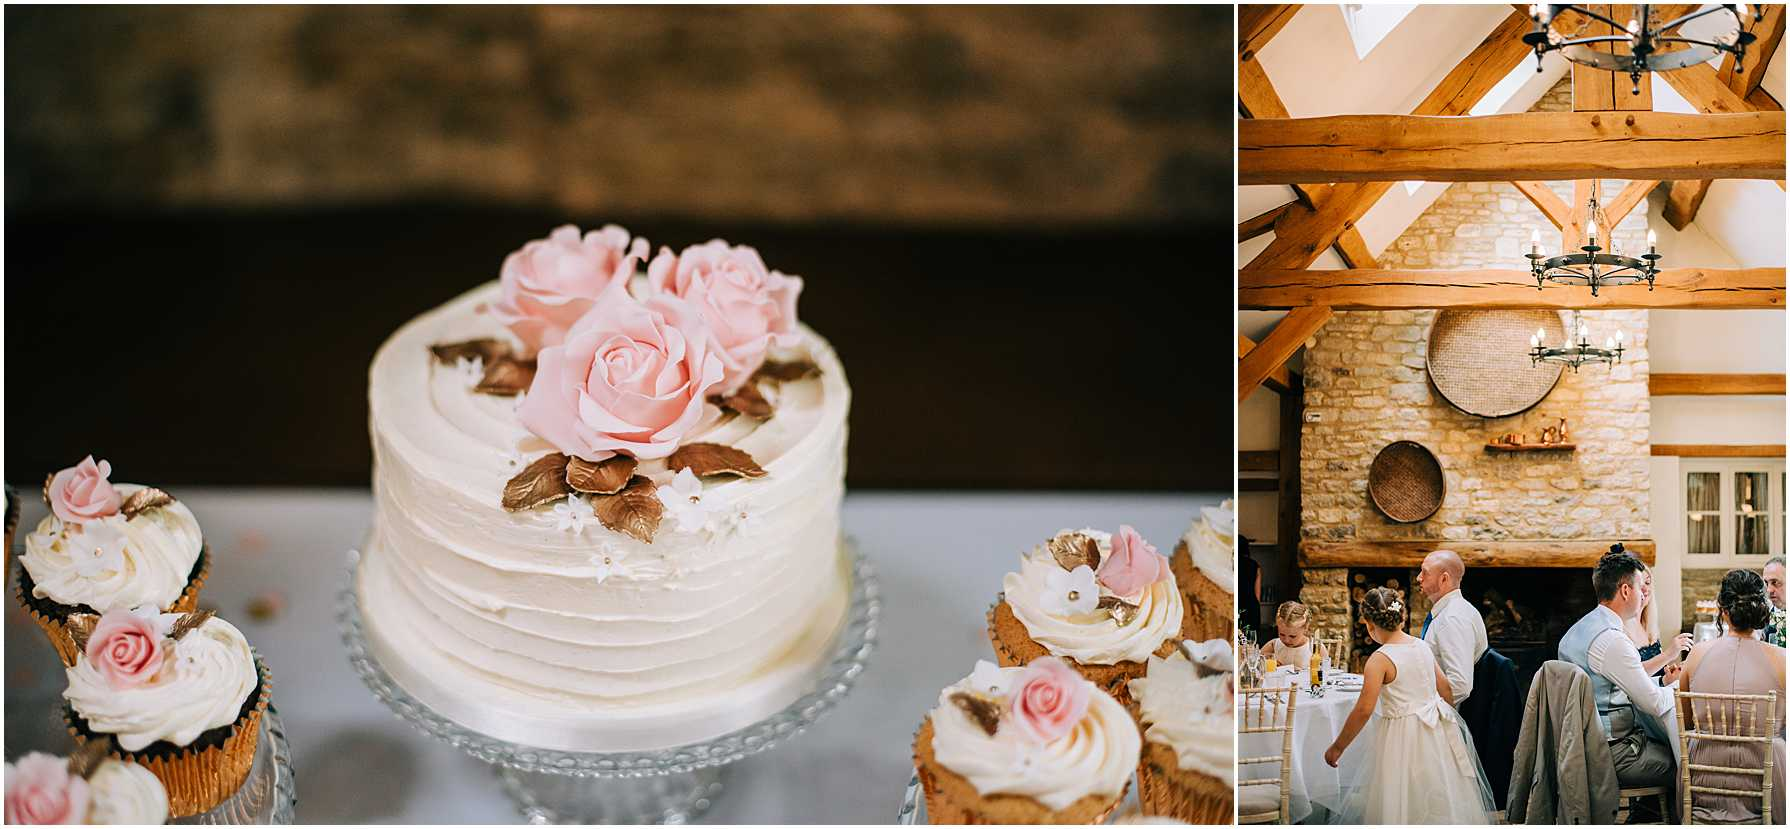 pink and cream wedding cake with small cup cakes